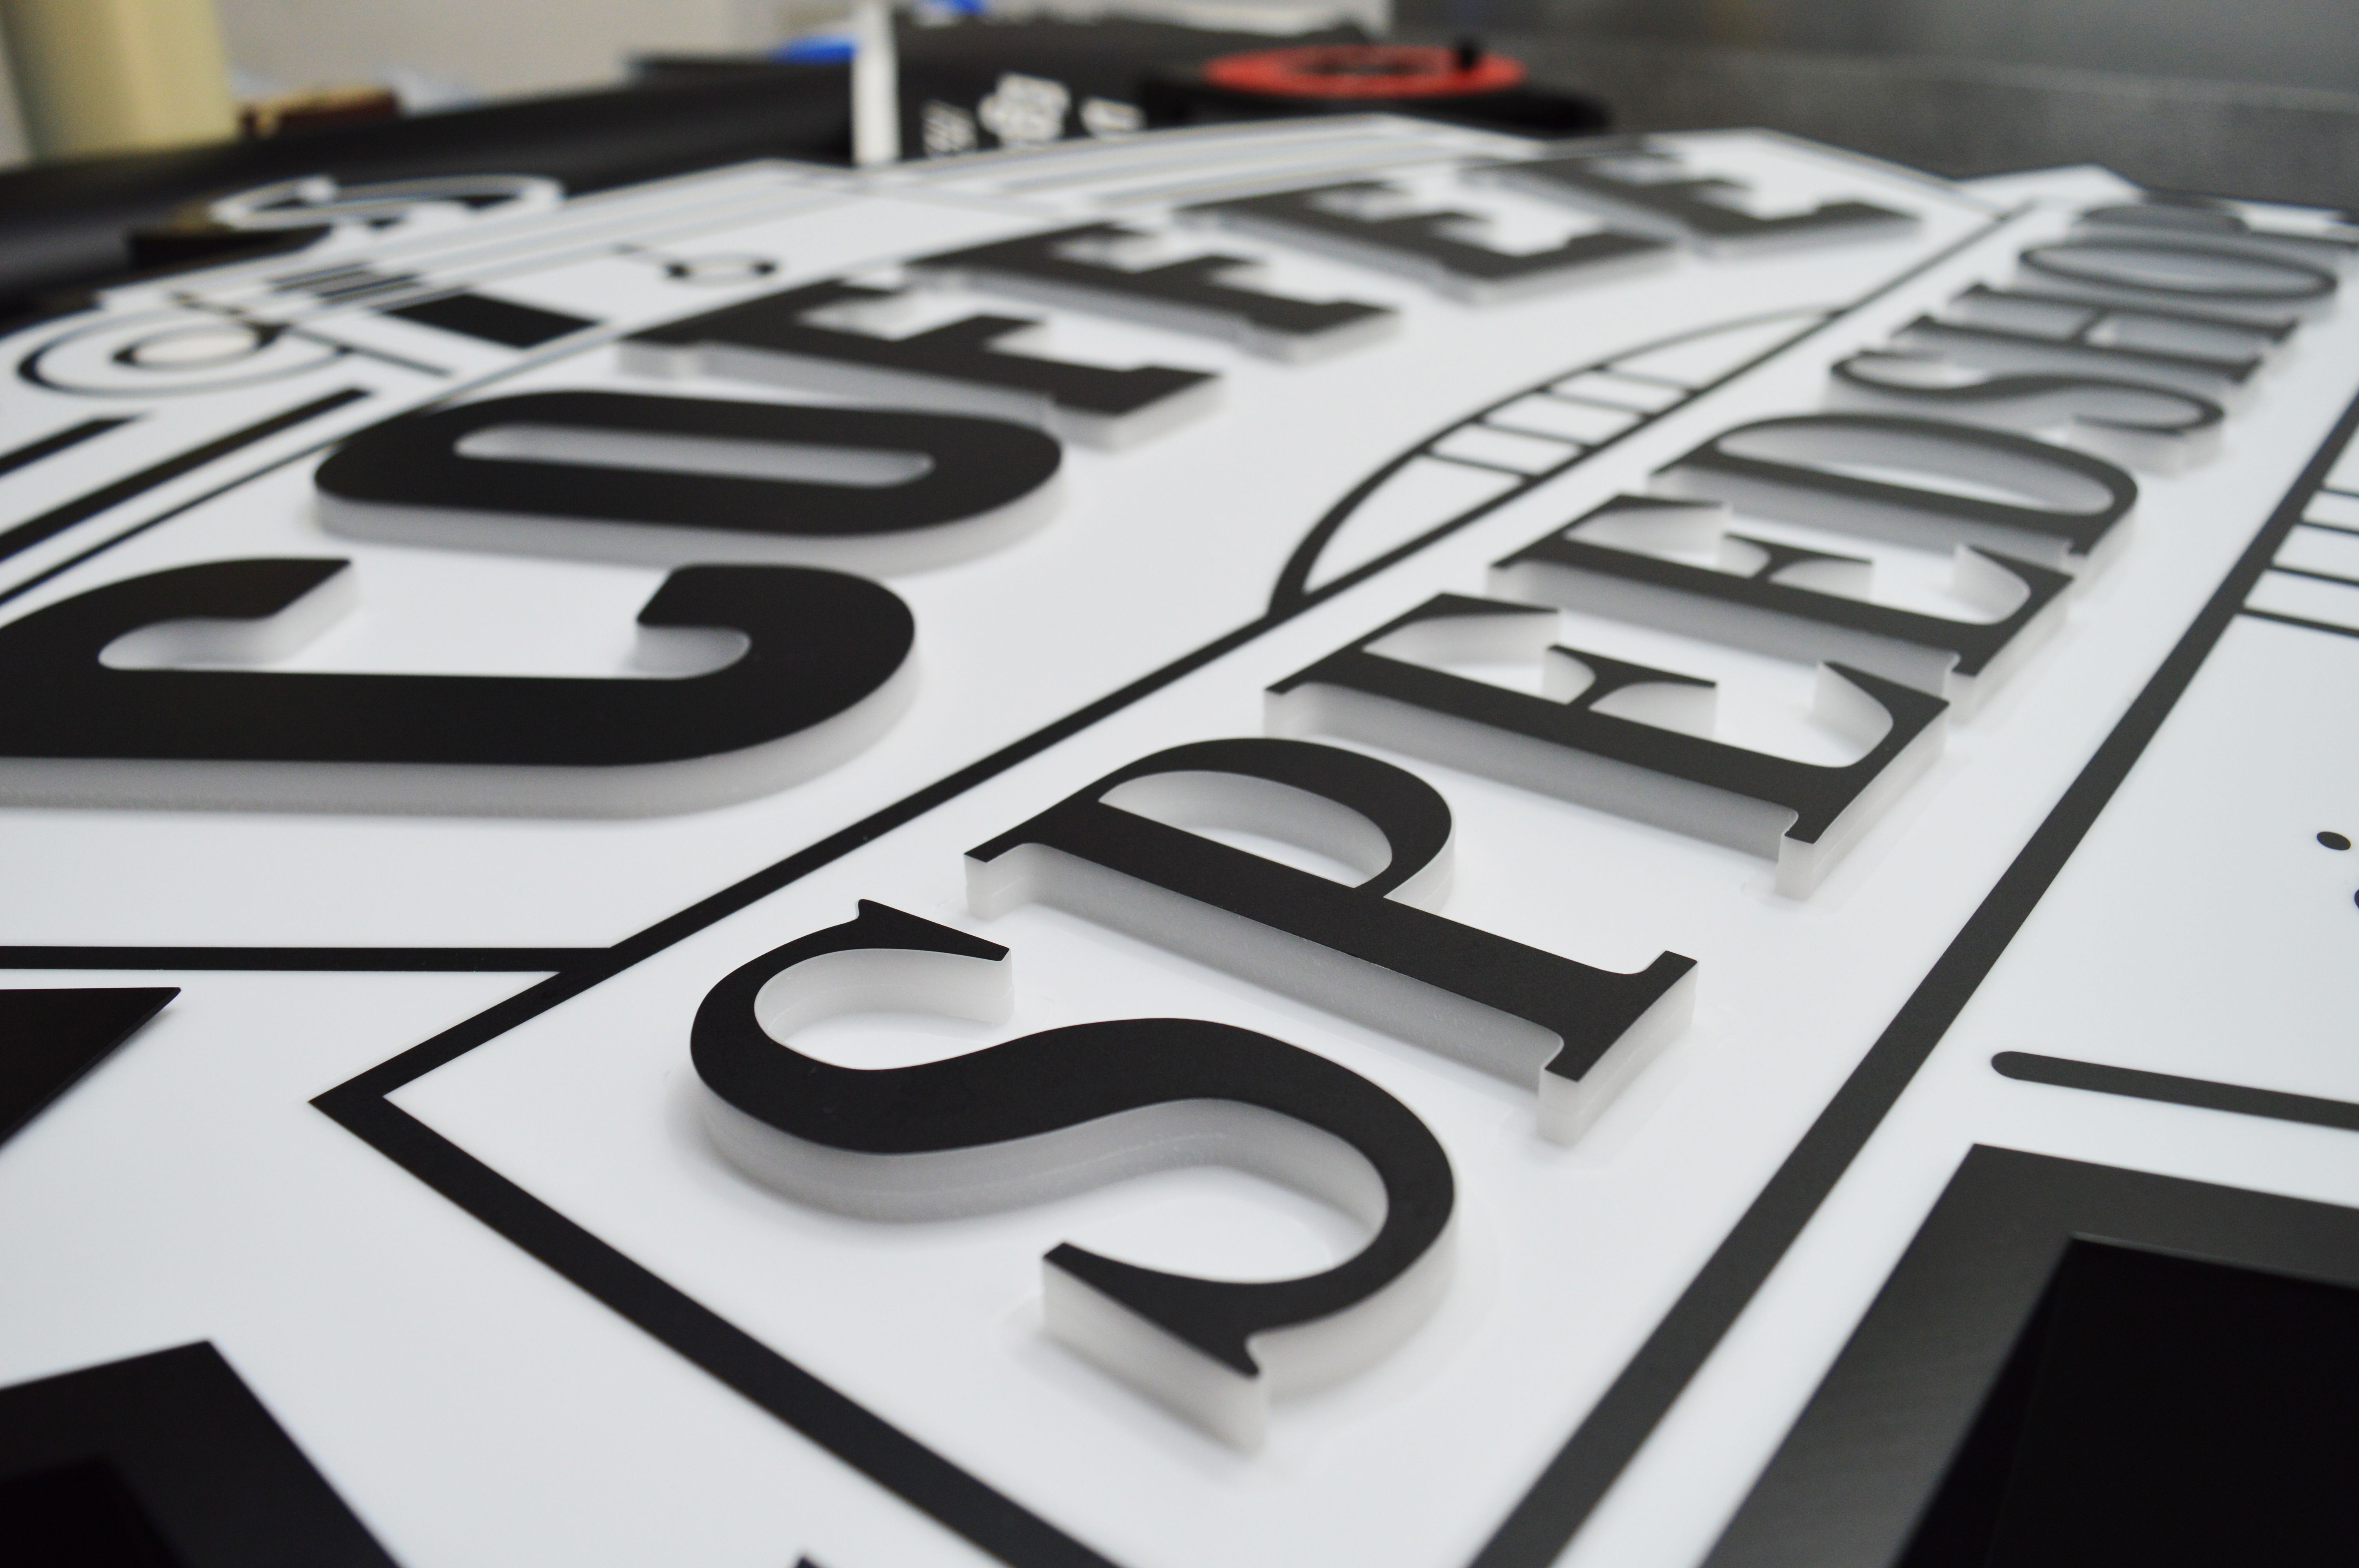 #signage #sign #signs #graphicdesign #graphic #design #acrylic #letters